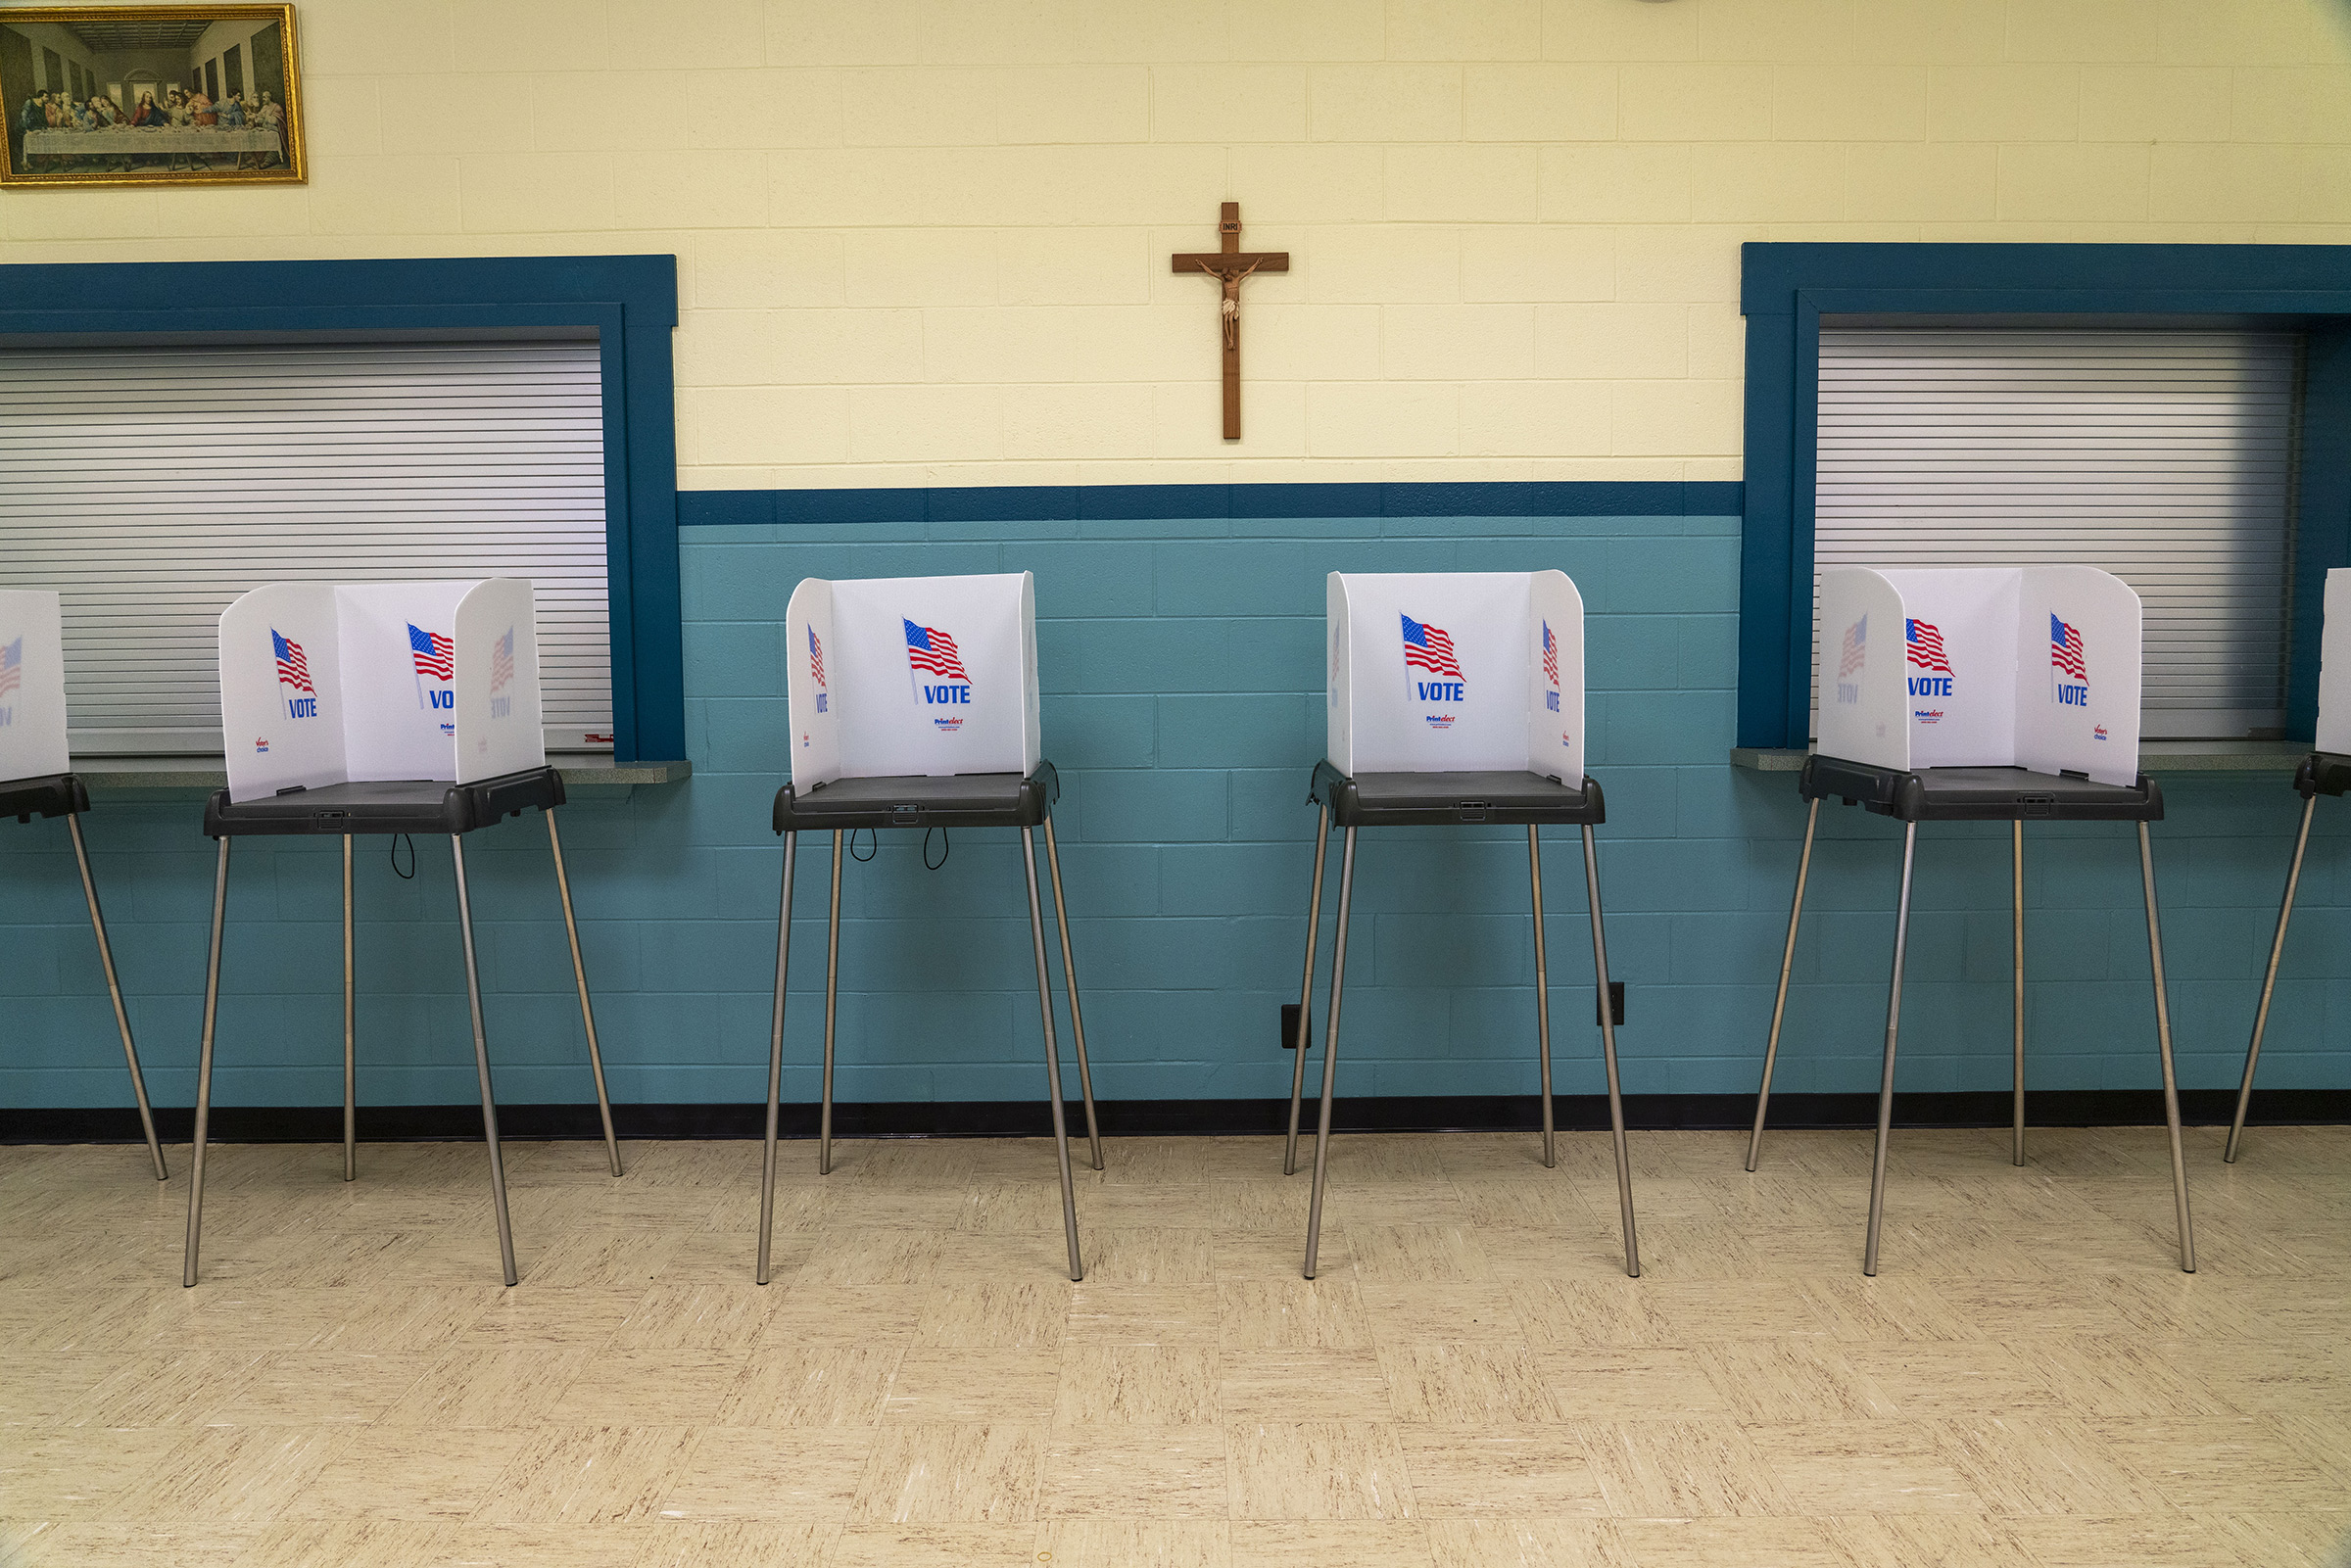 A polling station sits empty at a church in West Milton, Ohio, on March 16, 2020.